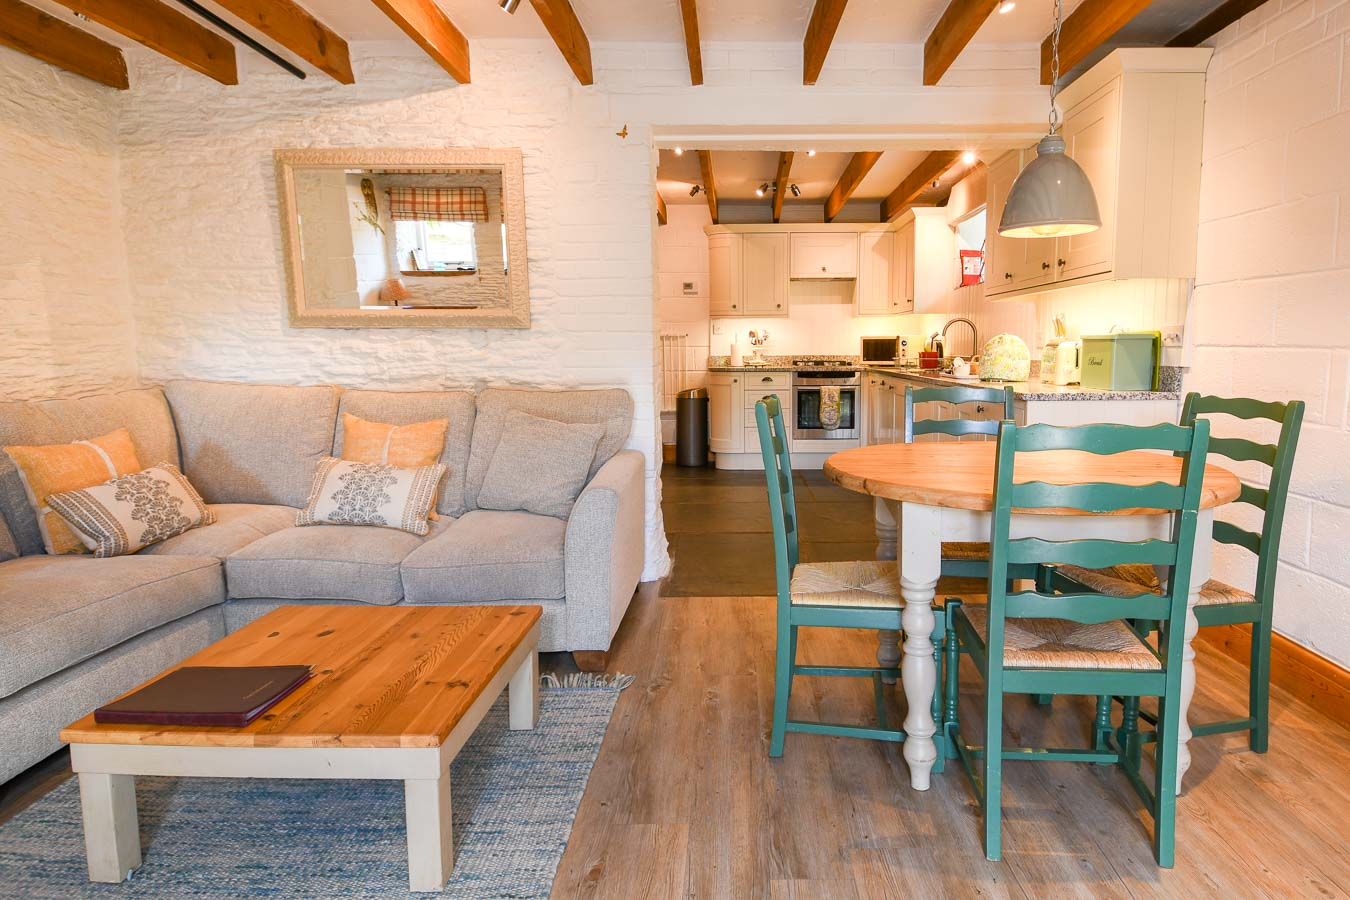 Detail of the corner sofa and open plan living room in Quarry holiday cottage Flear Farm.